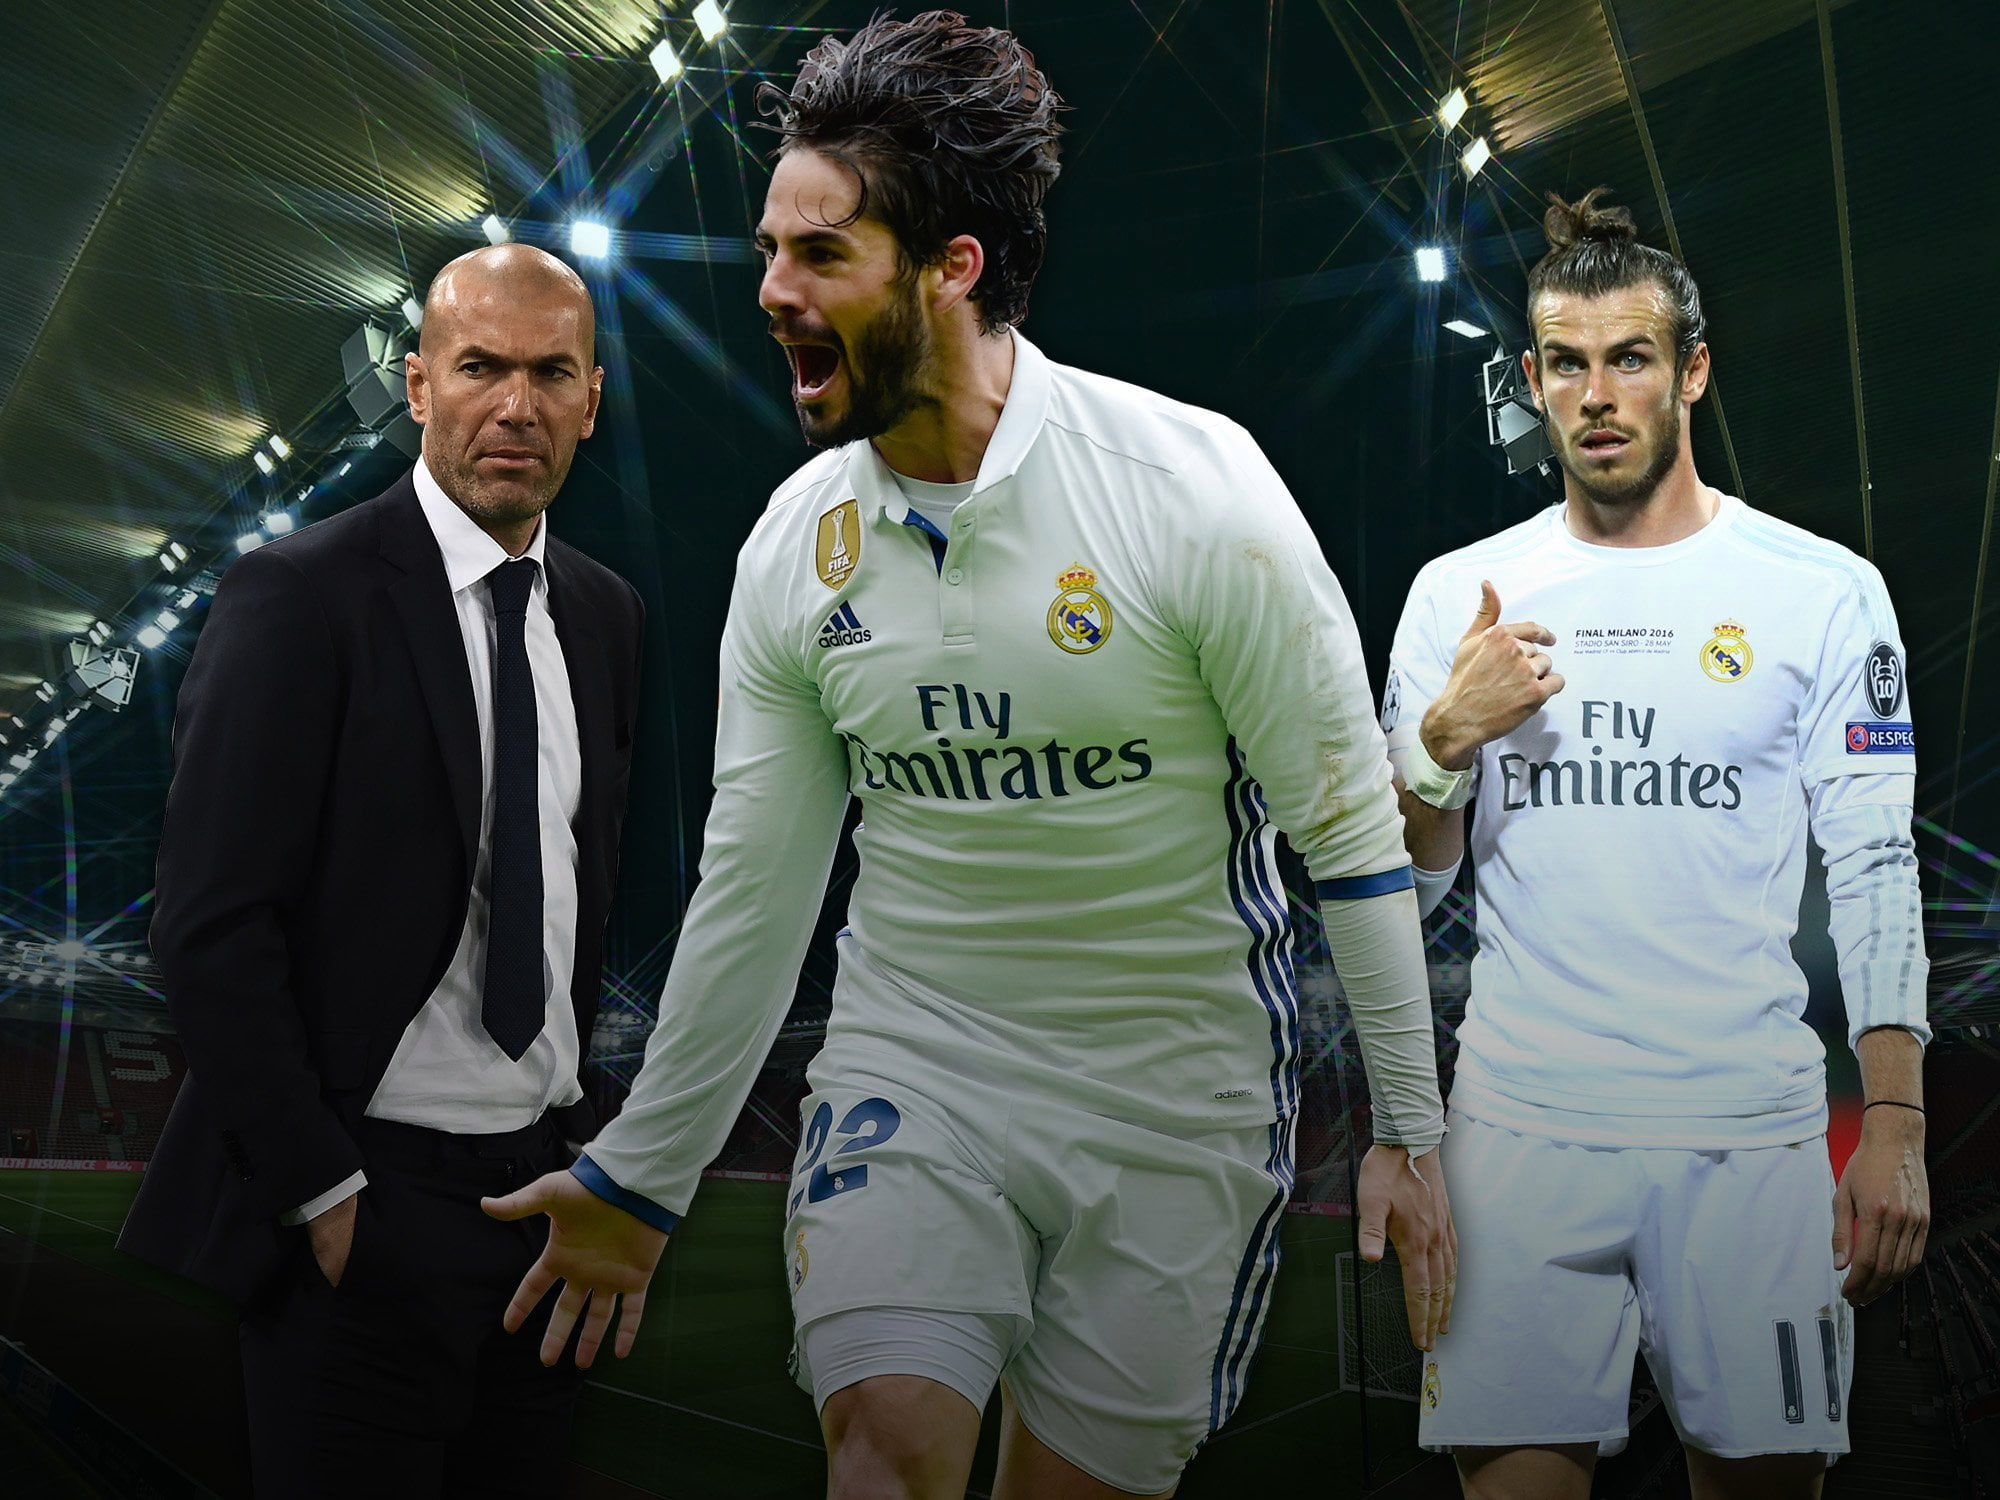 Bale Isco - Transfer: Real Madrid offer Bale, Isco, £72m for Man United star